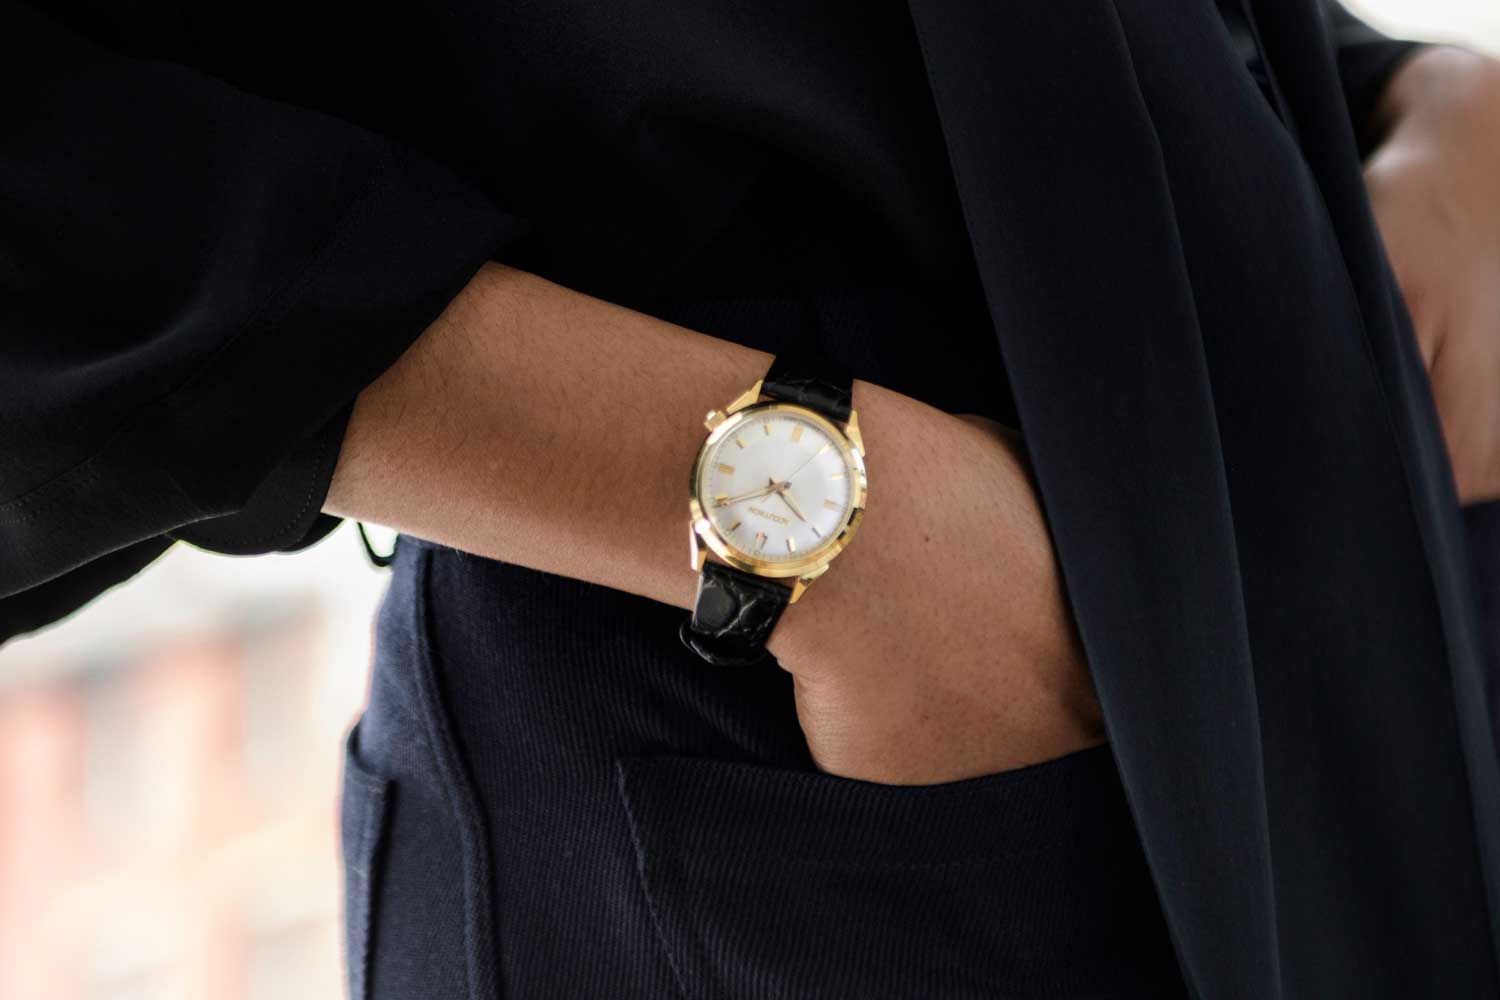 The watch is directly influenced by the Ivy League style of dress that began to emerge in the late 50's through to the 60's.